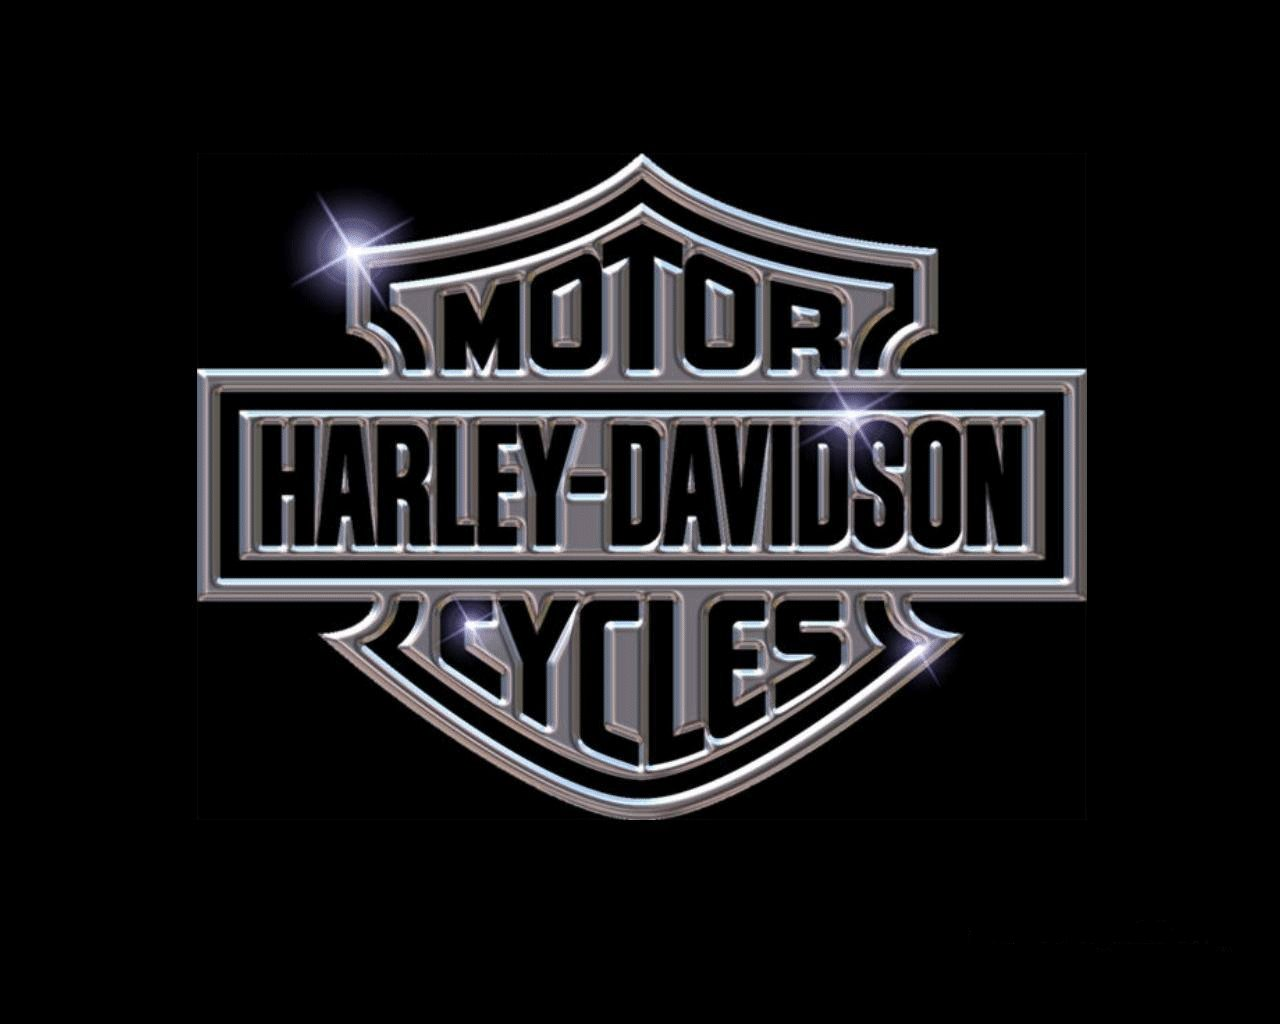 Harley Davidson Logo shine like a diamond